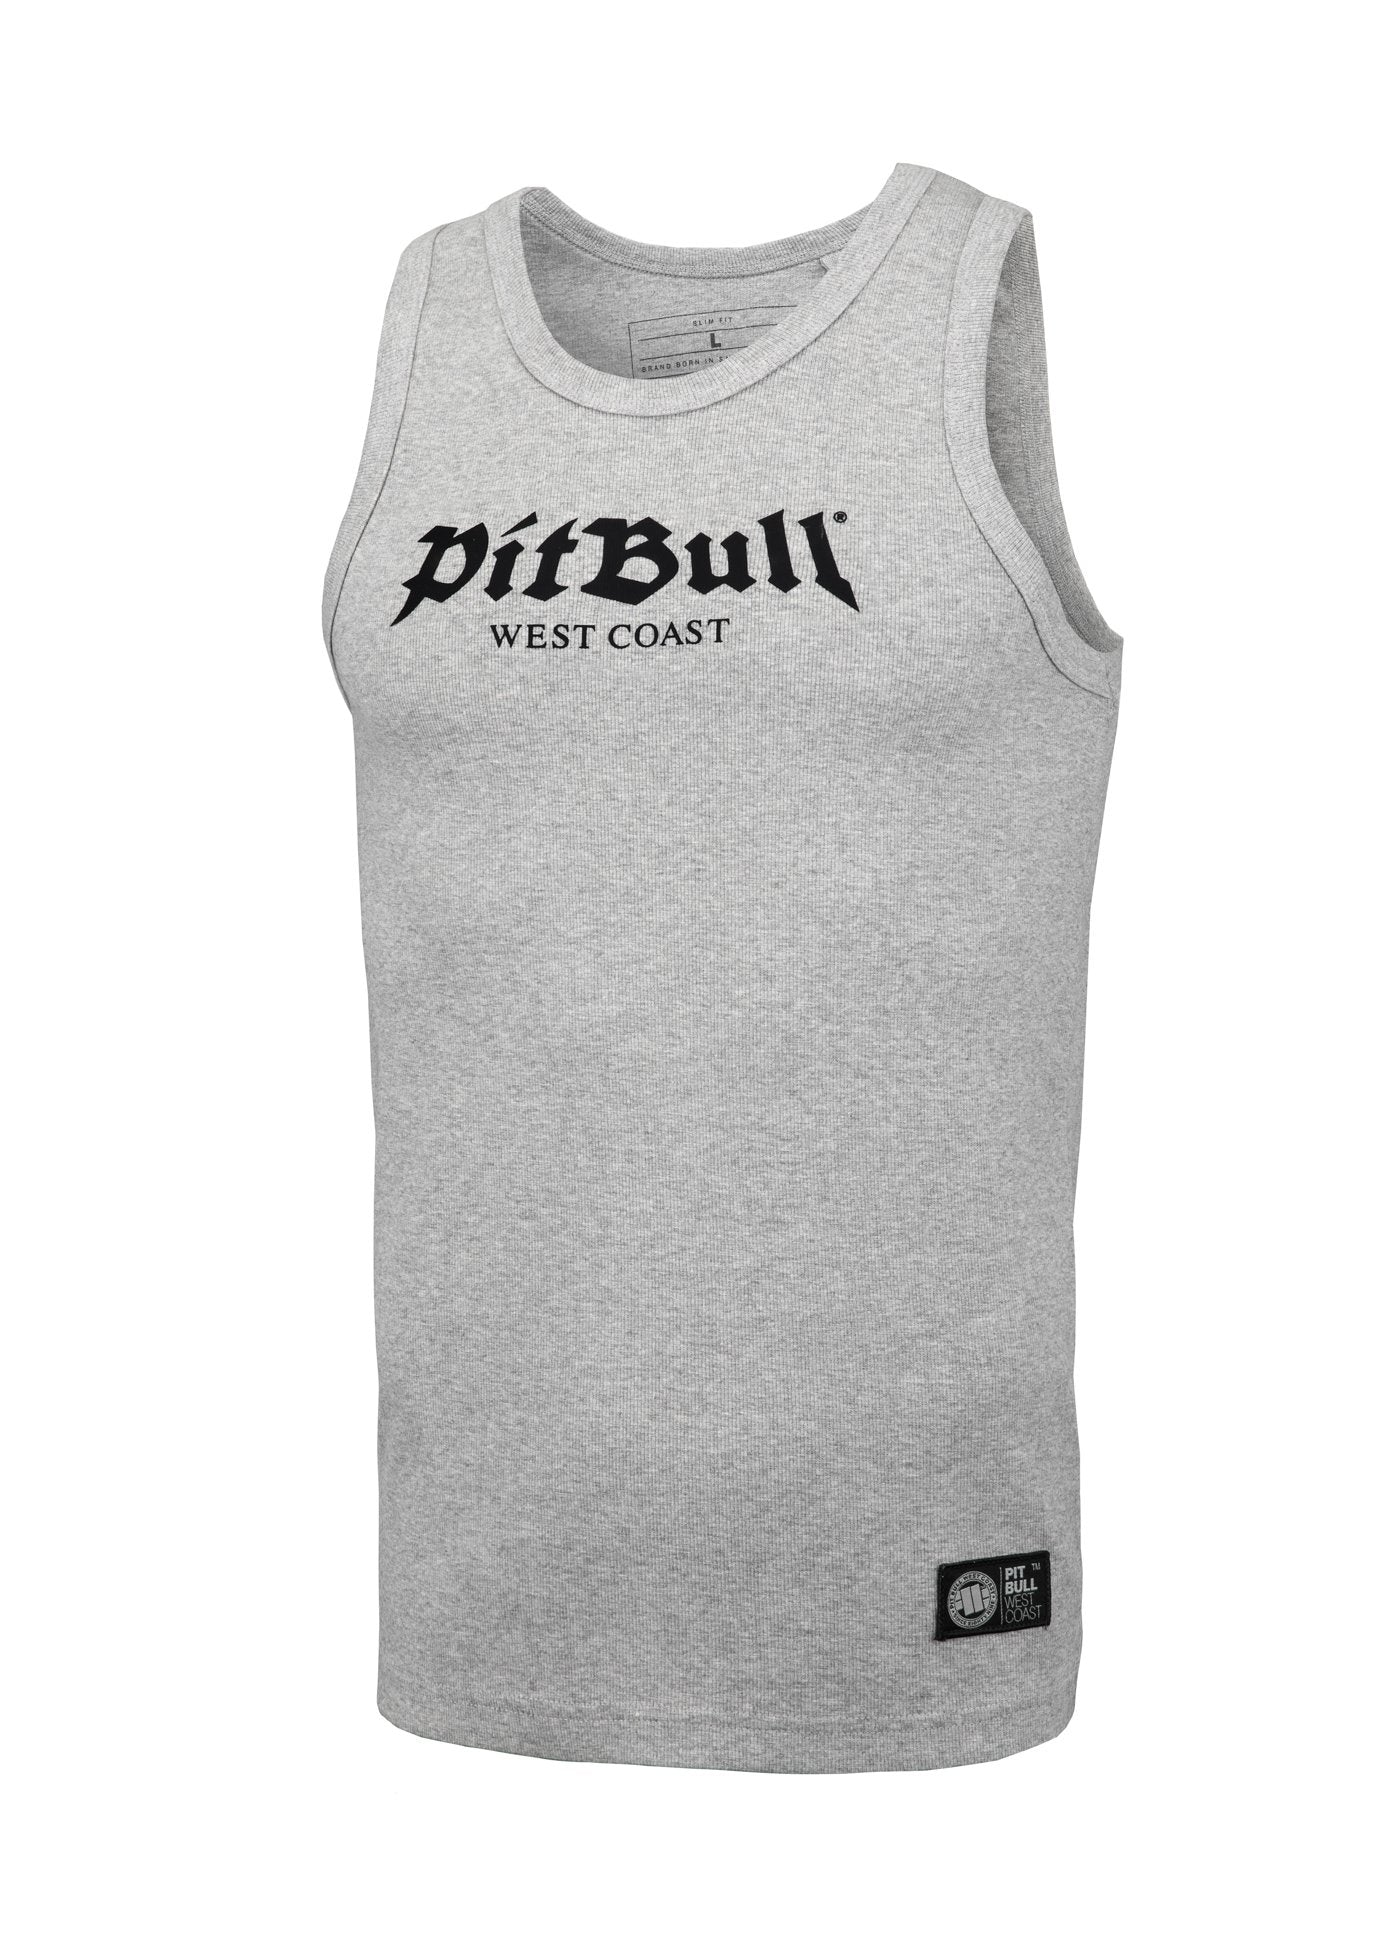 Rib Tank Top Old Logo Grey MLG - pitbullwestcoast